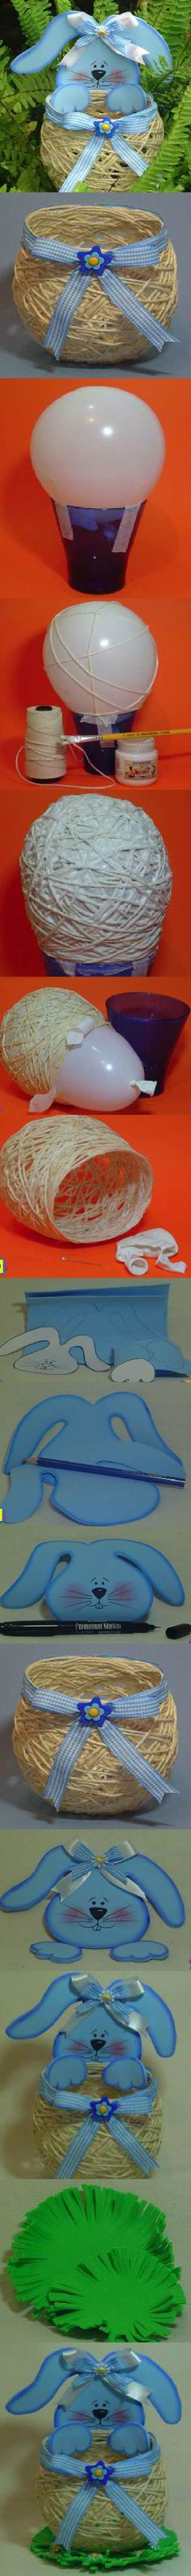 DIY Yarn String Easter Basket .